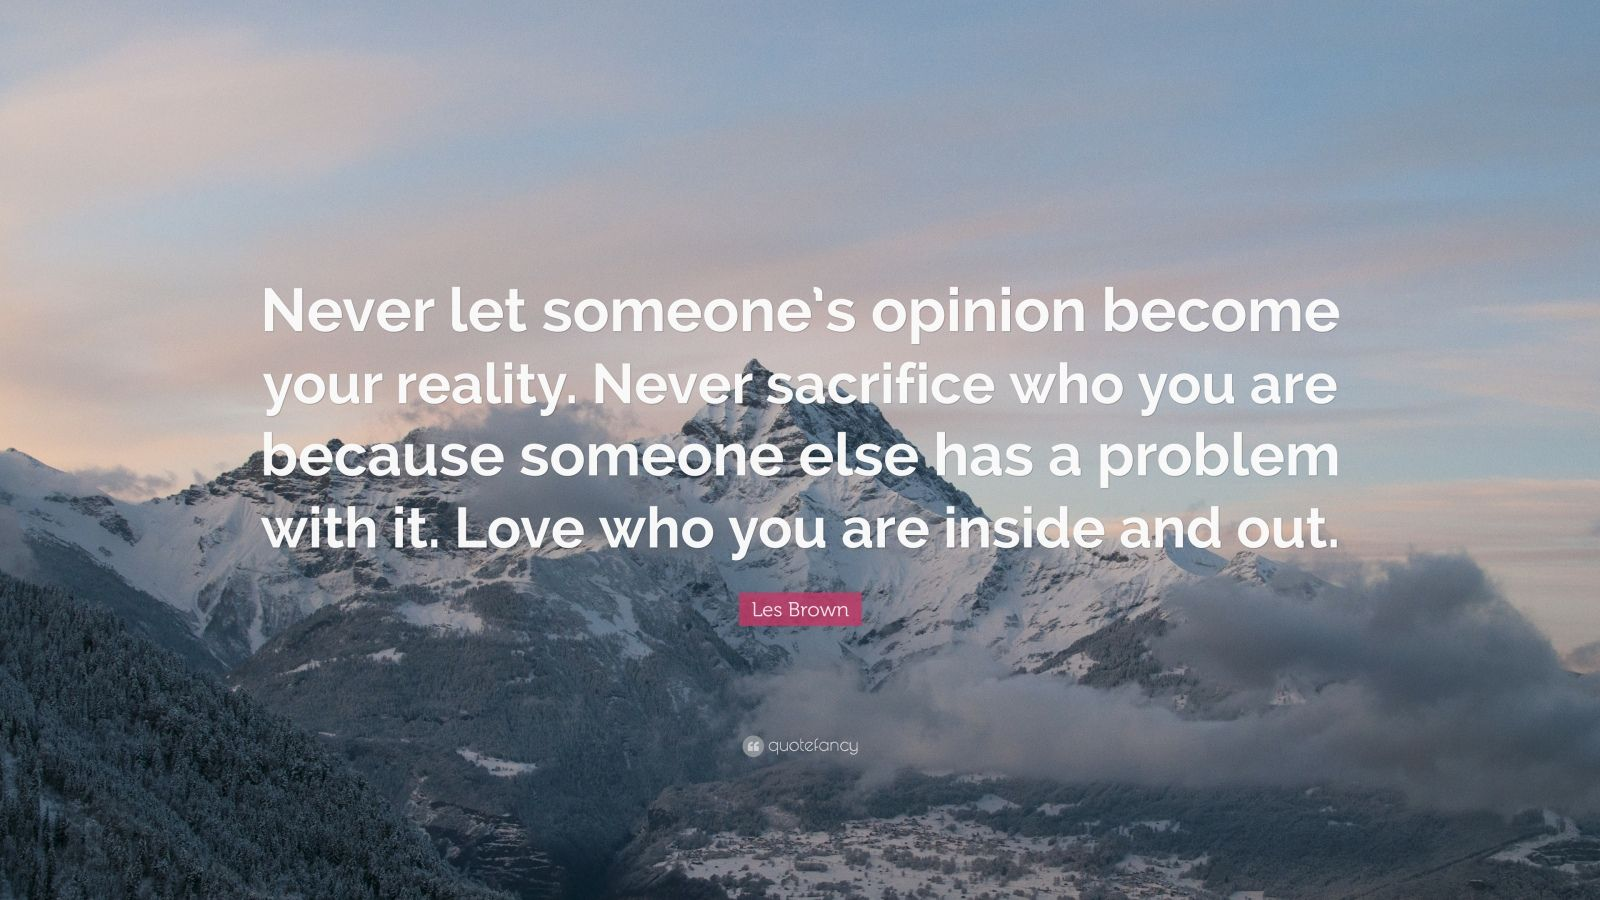 "Les Brown Quote: ""Never let someone's opinion become your reality. Never sacrifice who you are because someone else has a problem with it. Love who you are inside and out."""